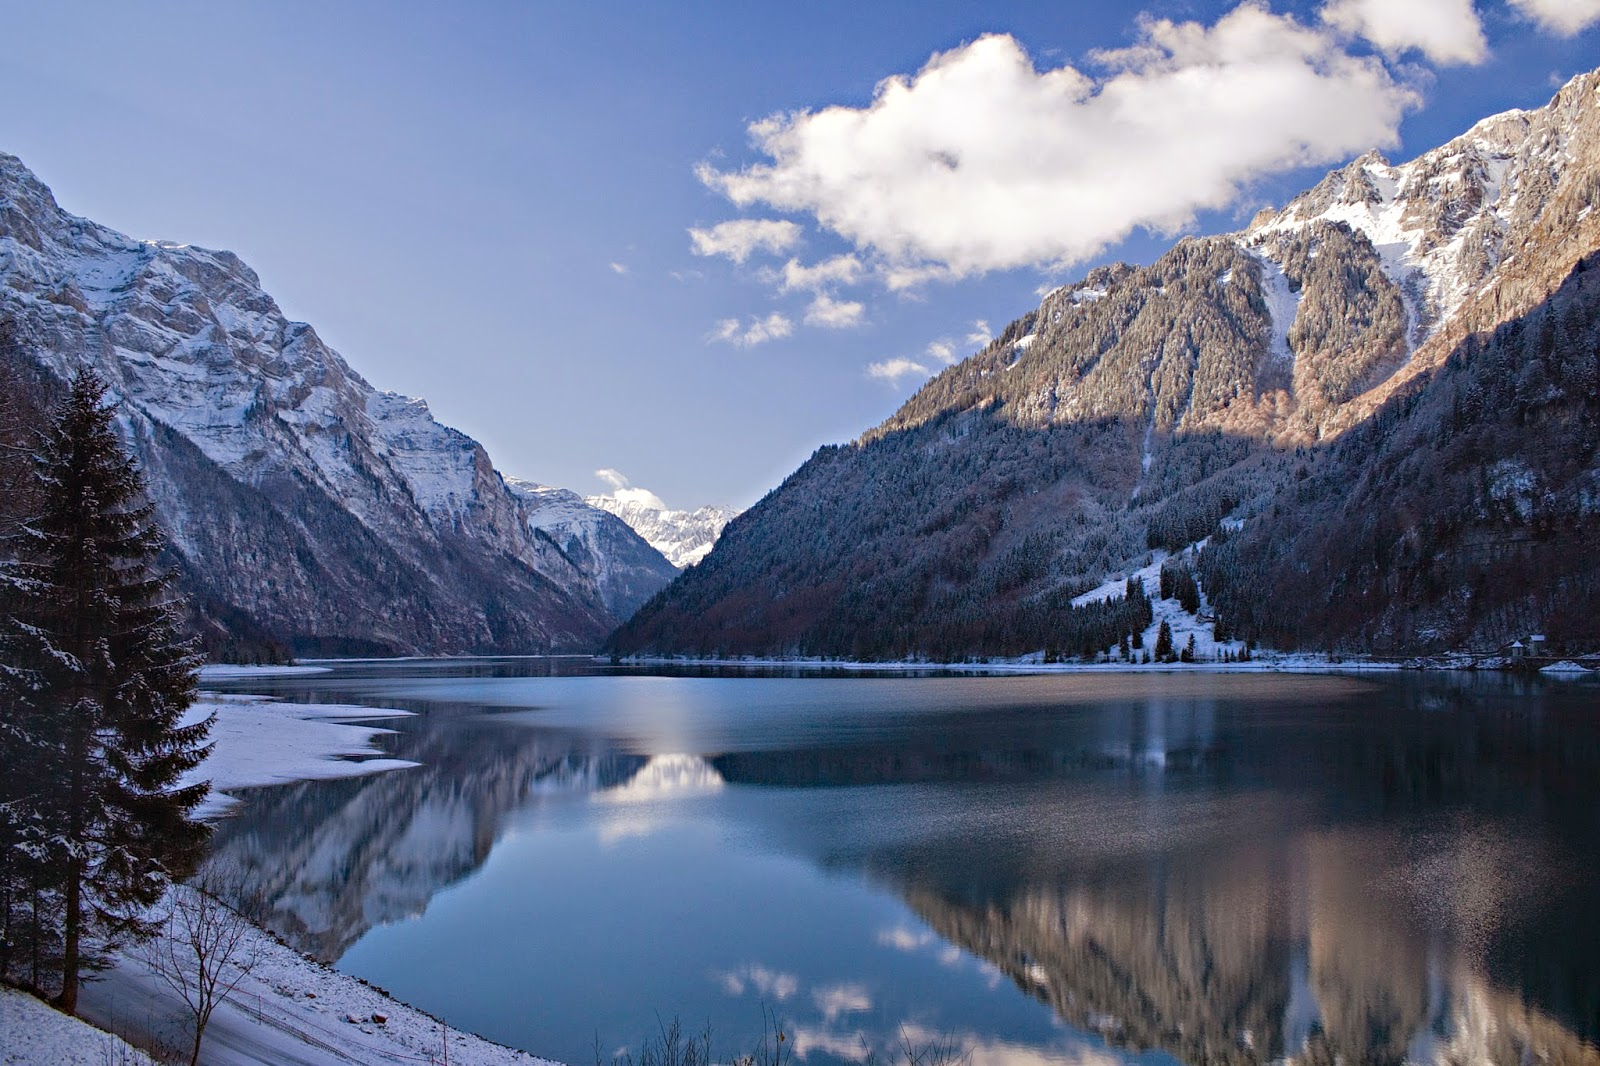 Blok888 Top 10 Most Beautiful Lakes In The World